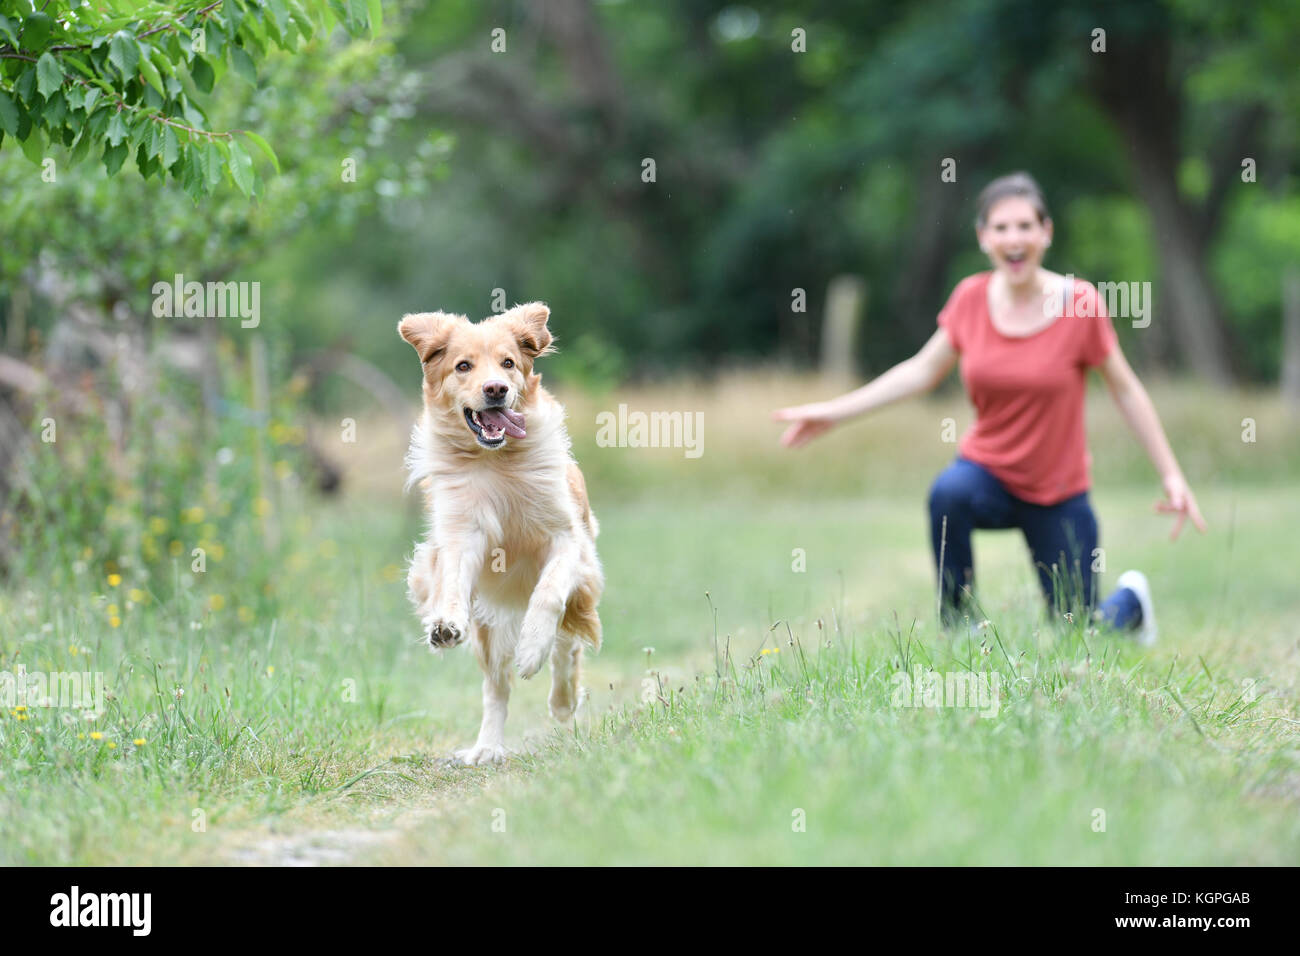 Dog Frisbee Stock Photos & Dog Frisbee Stock Images